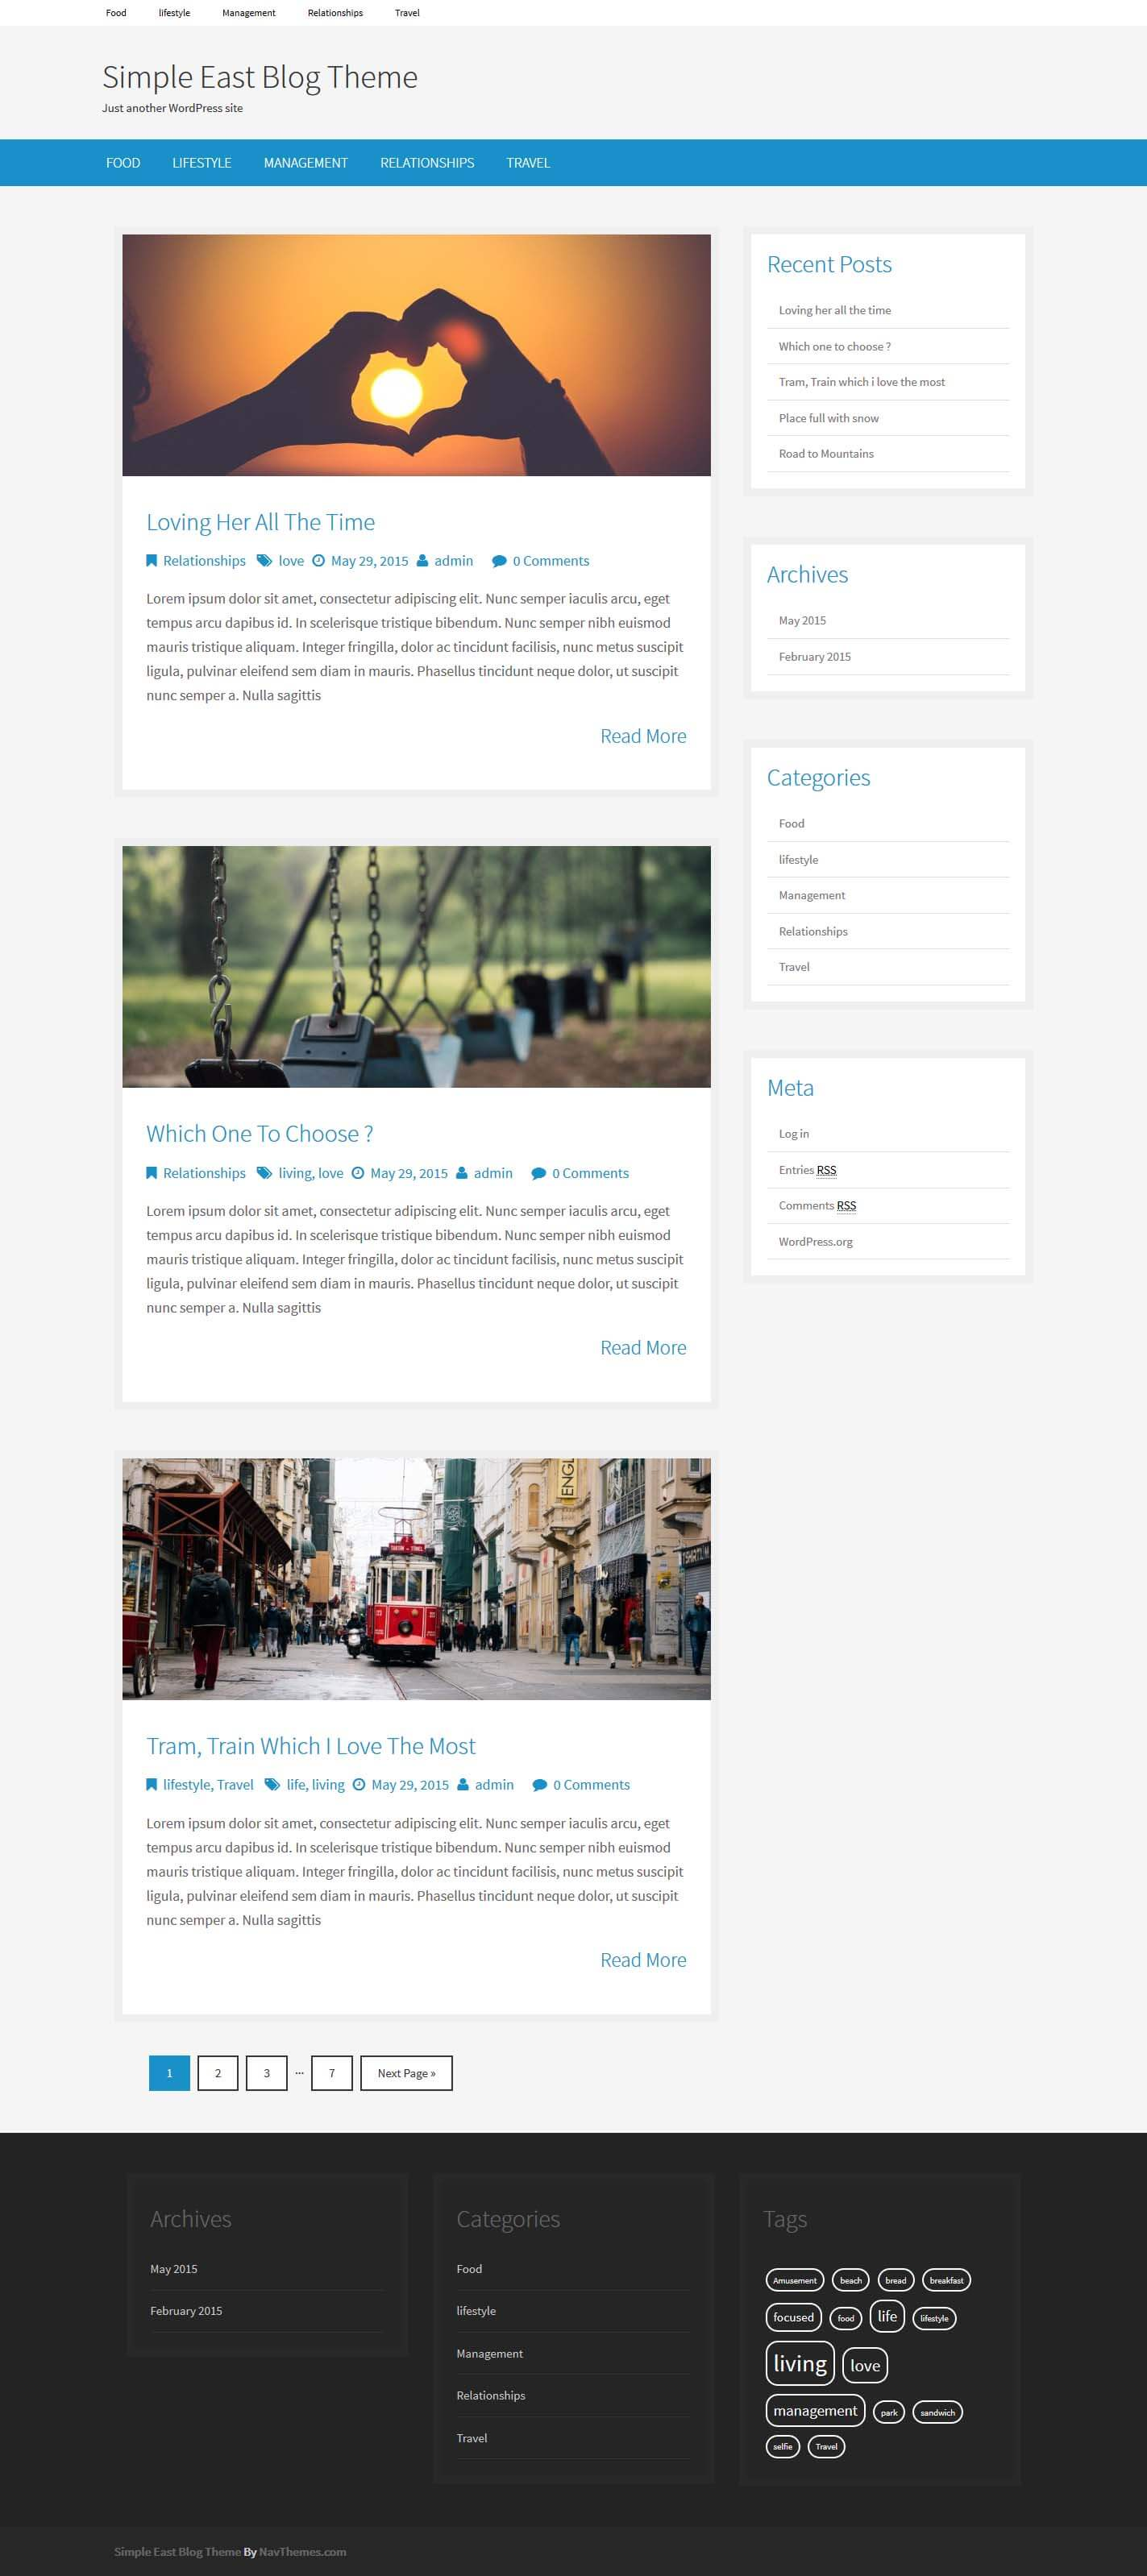 Simple East Blog Theme